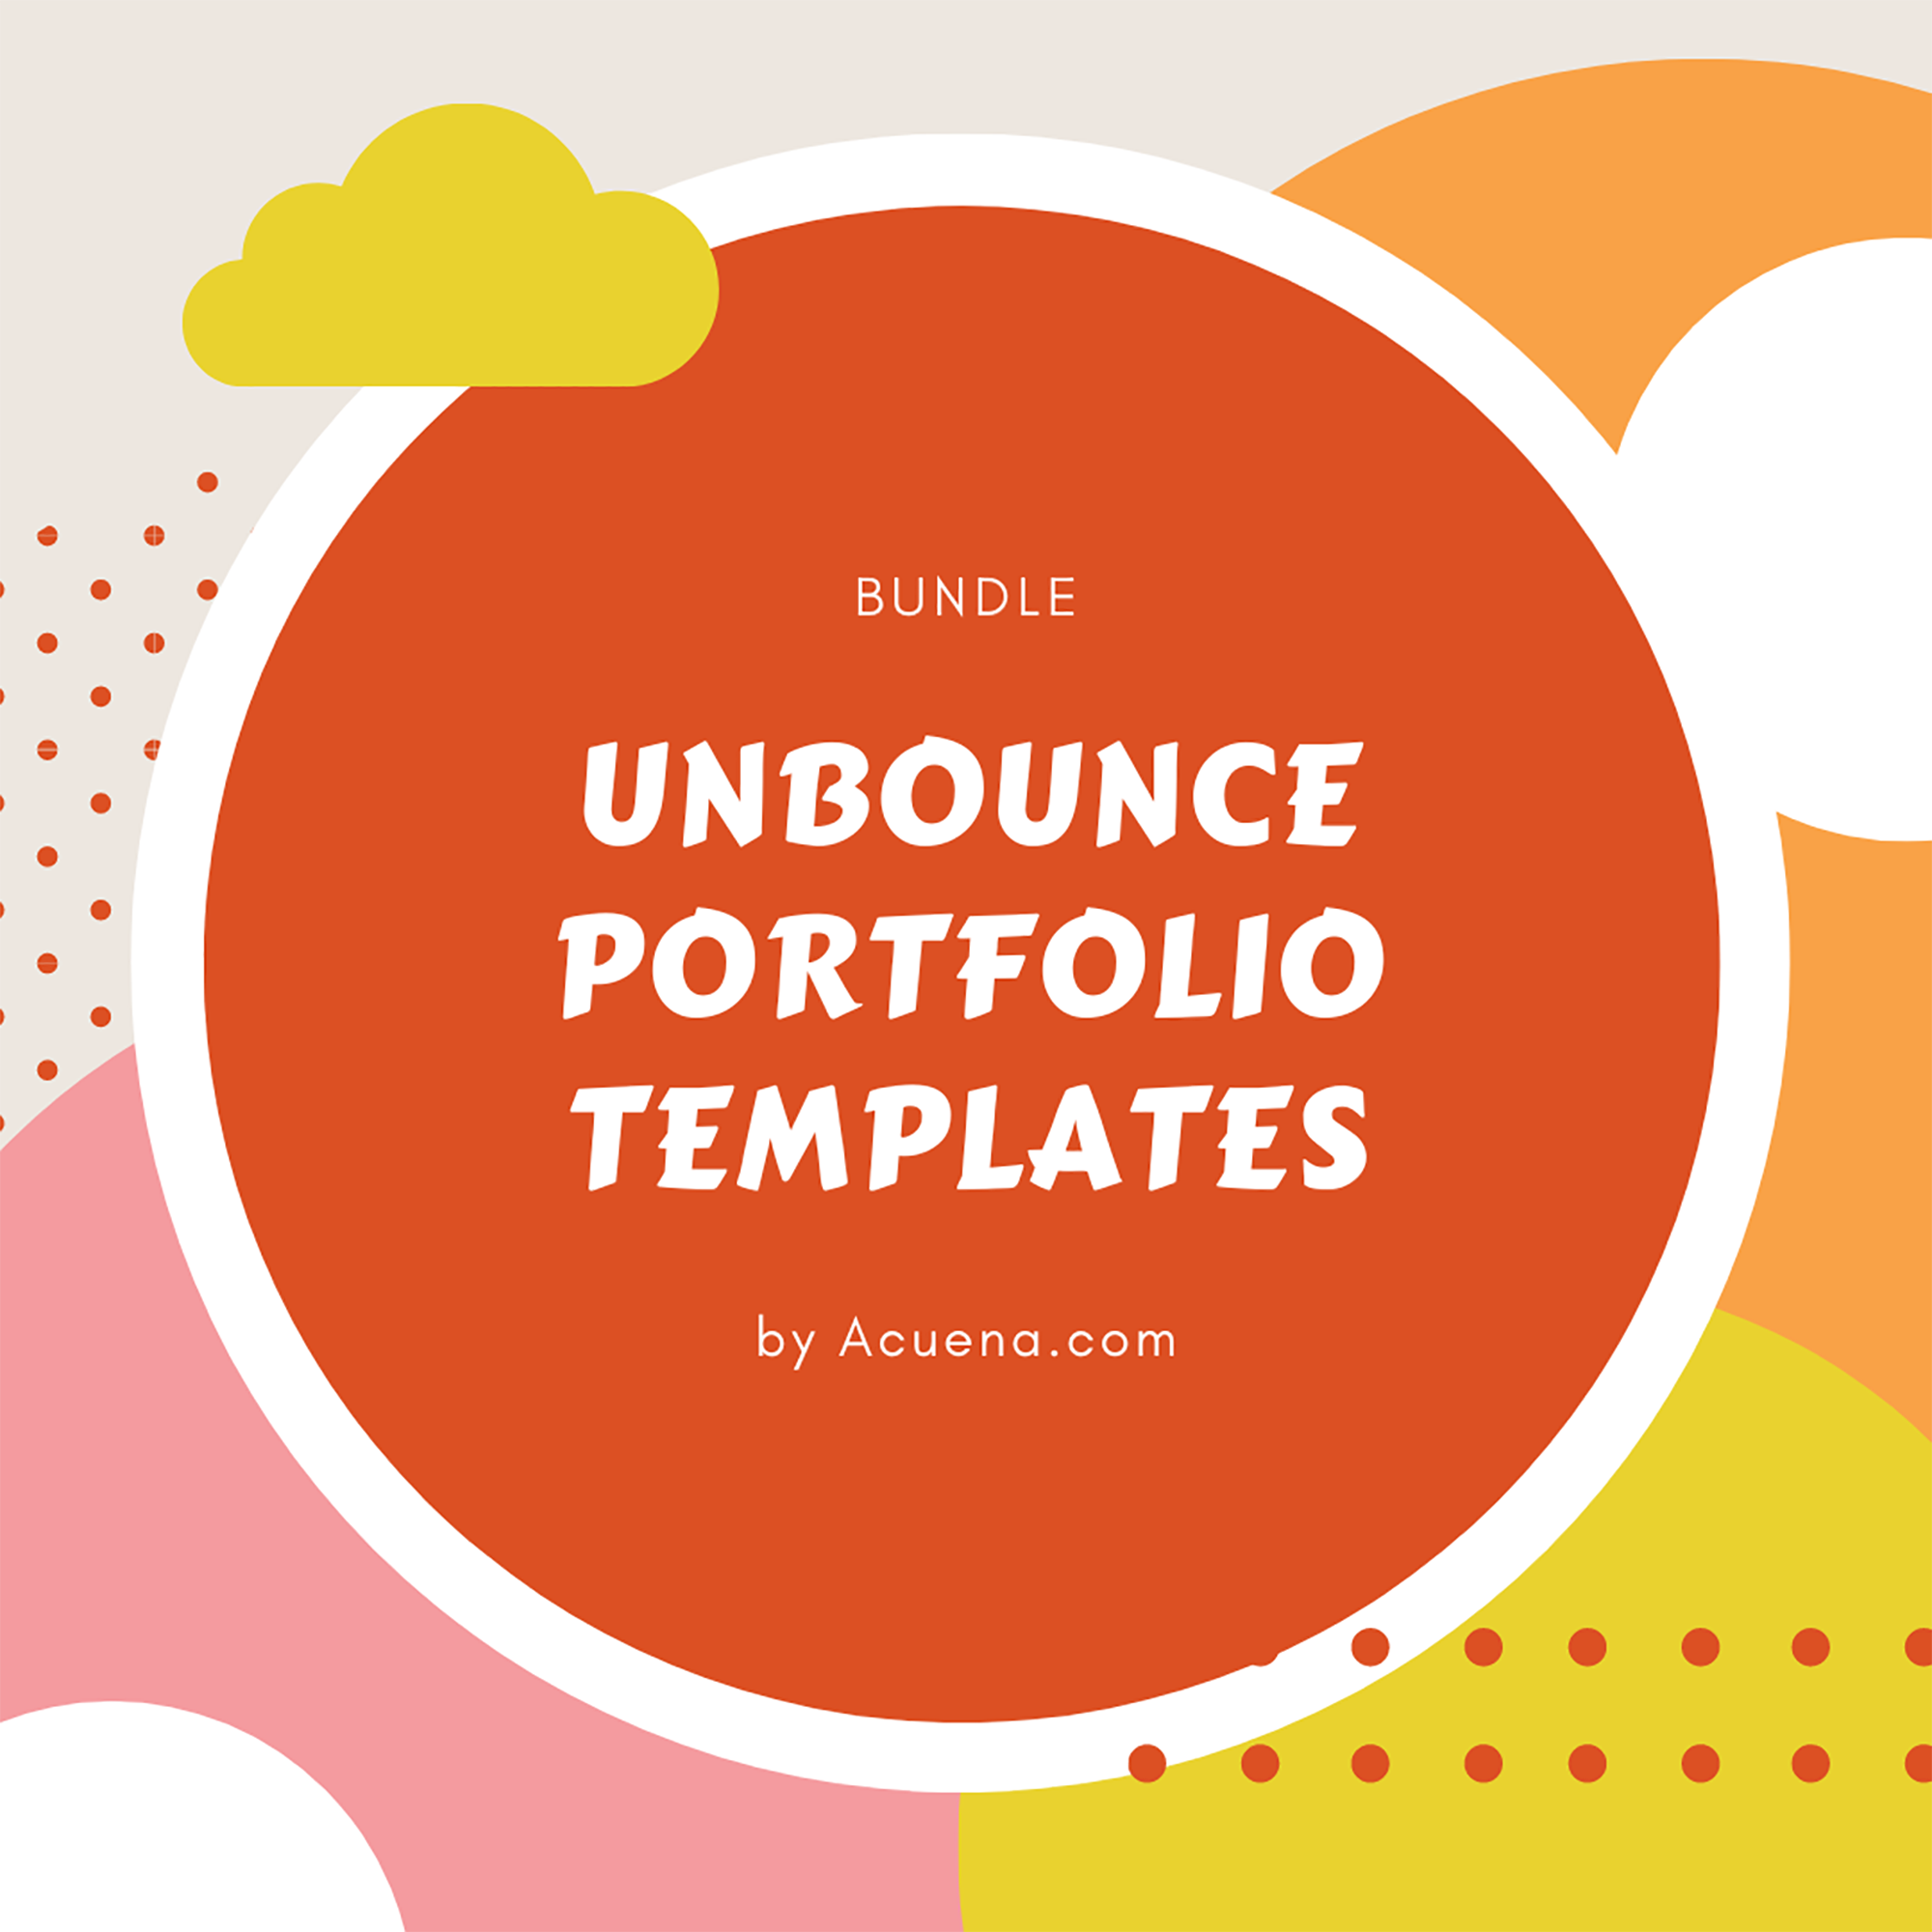 30+ Best Unbounce Templates in 2020: Free and Premium - Unbounce Portfolio Templates